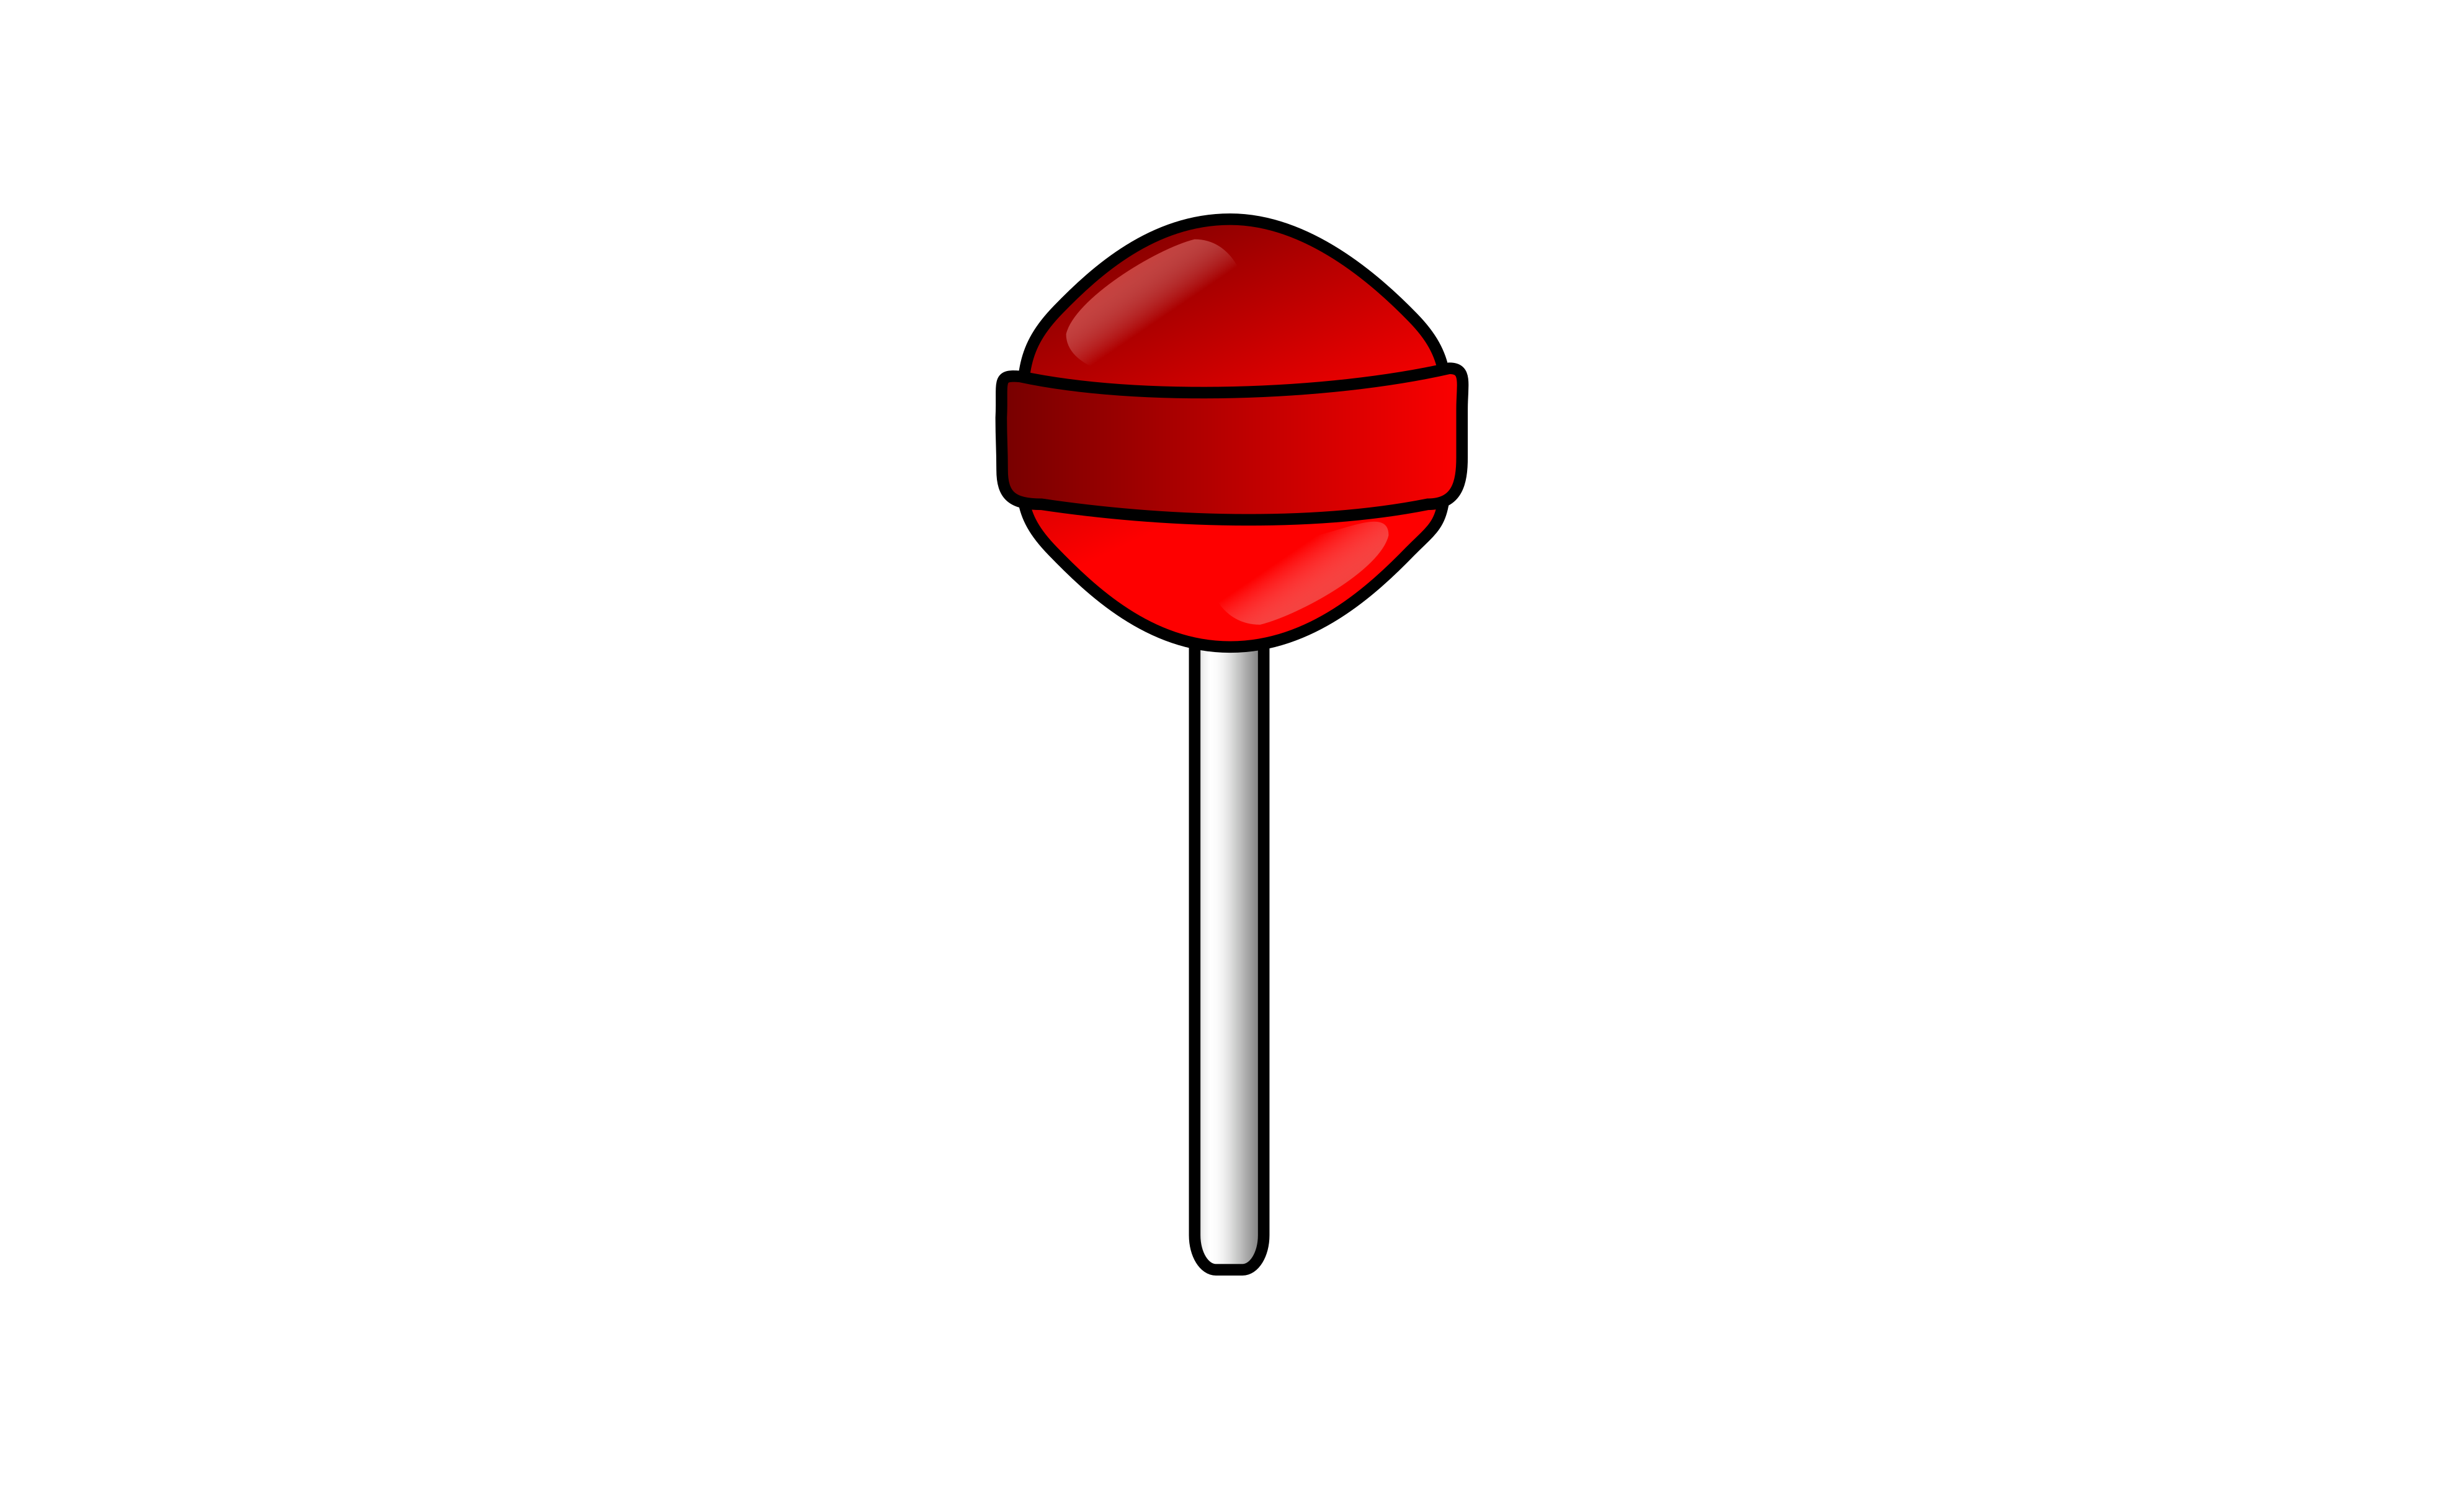 Red lollipop by Morgaine1976